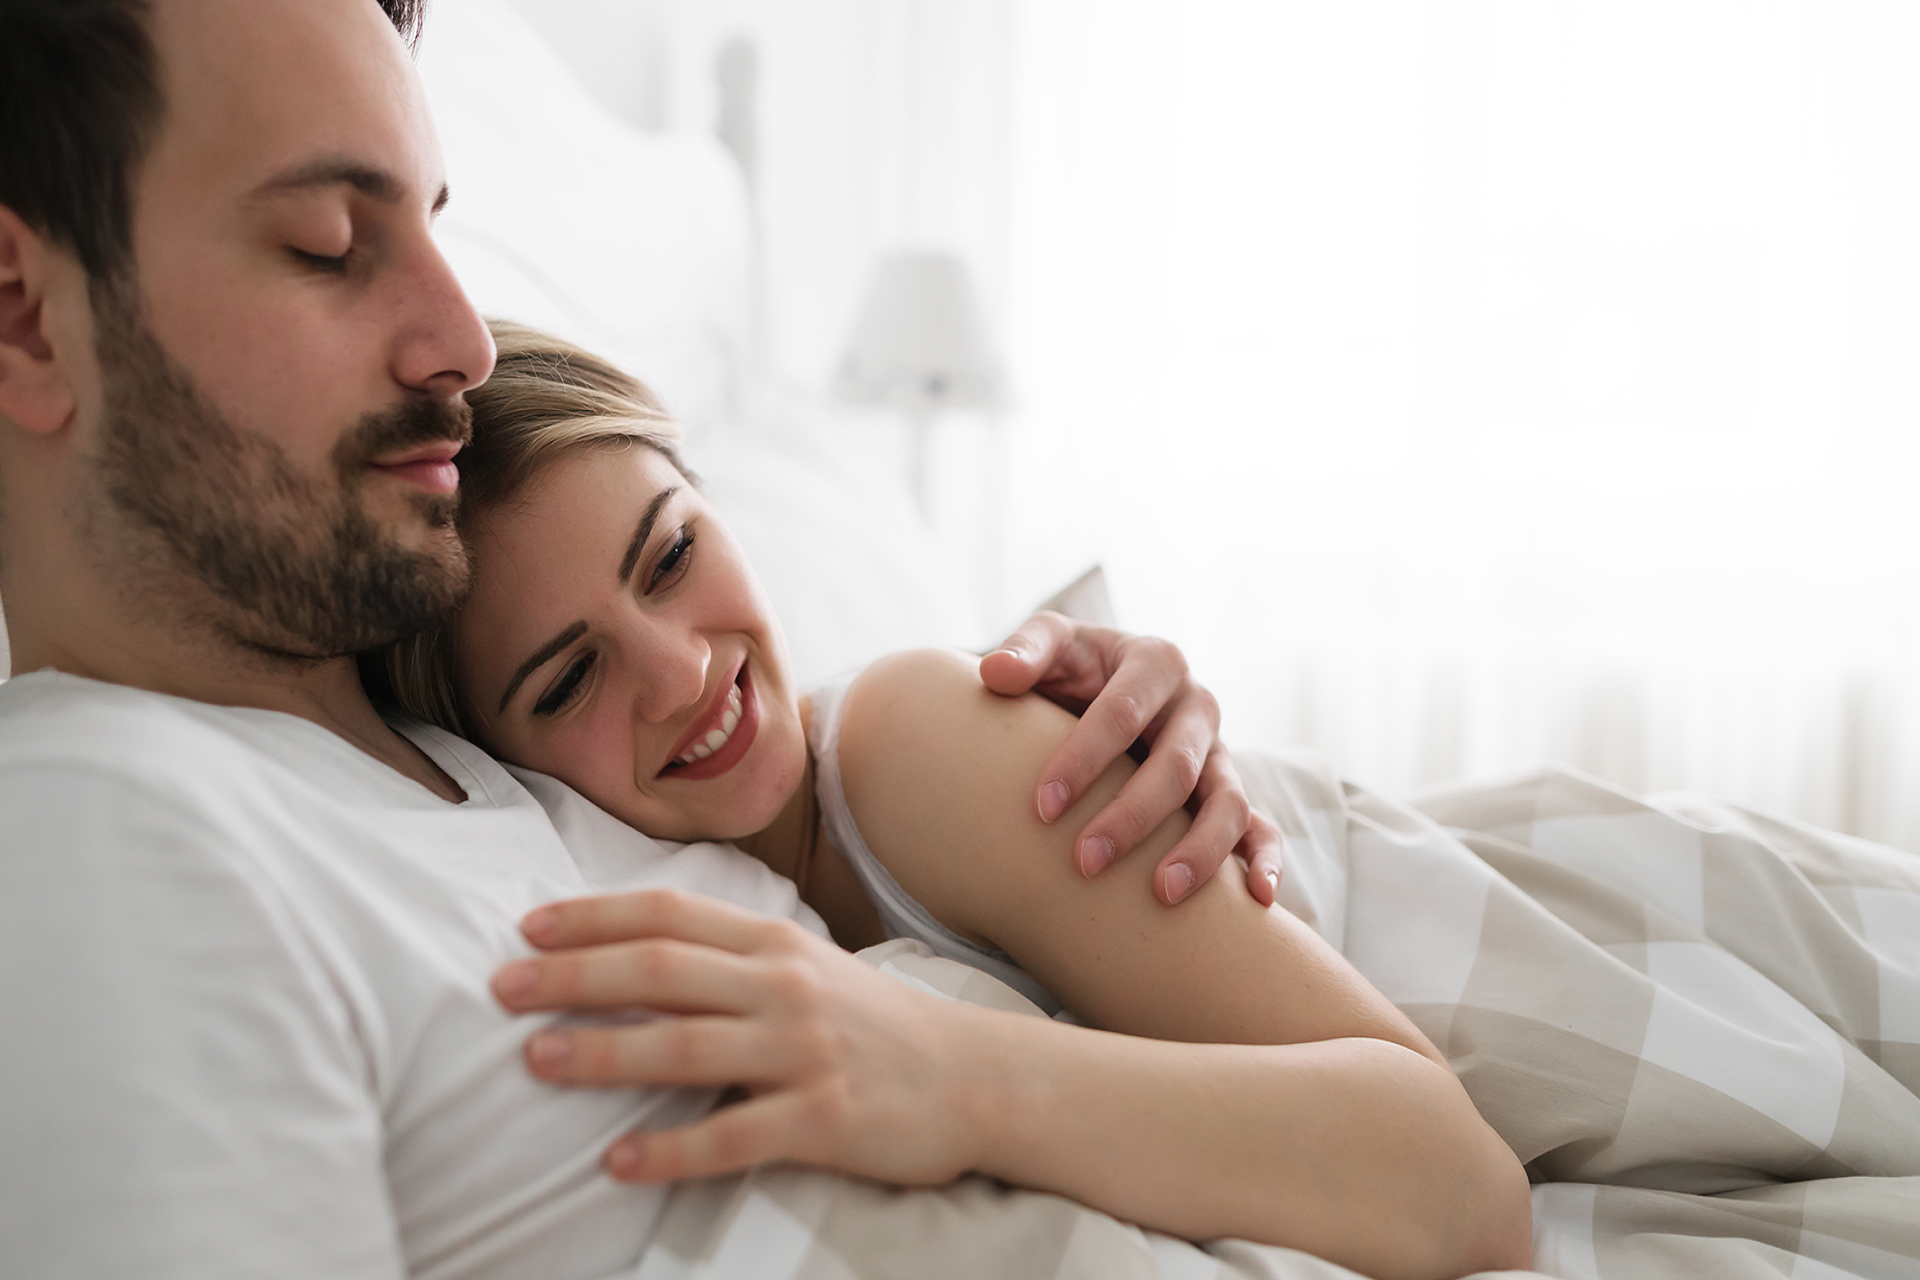 Ways To Improve Your Sexual Performance